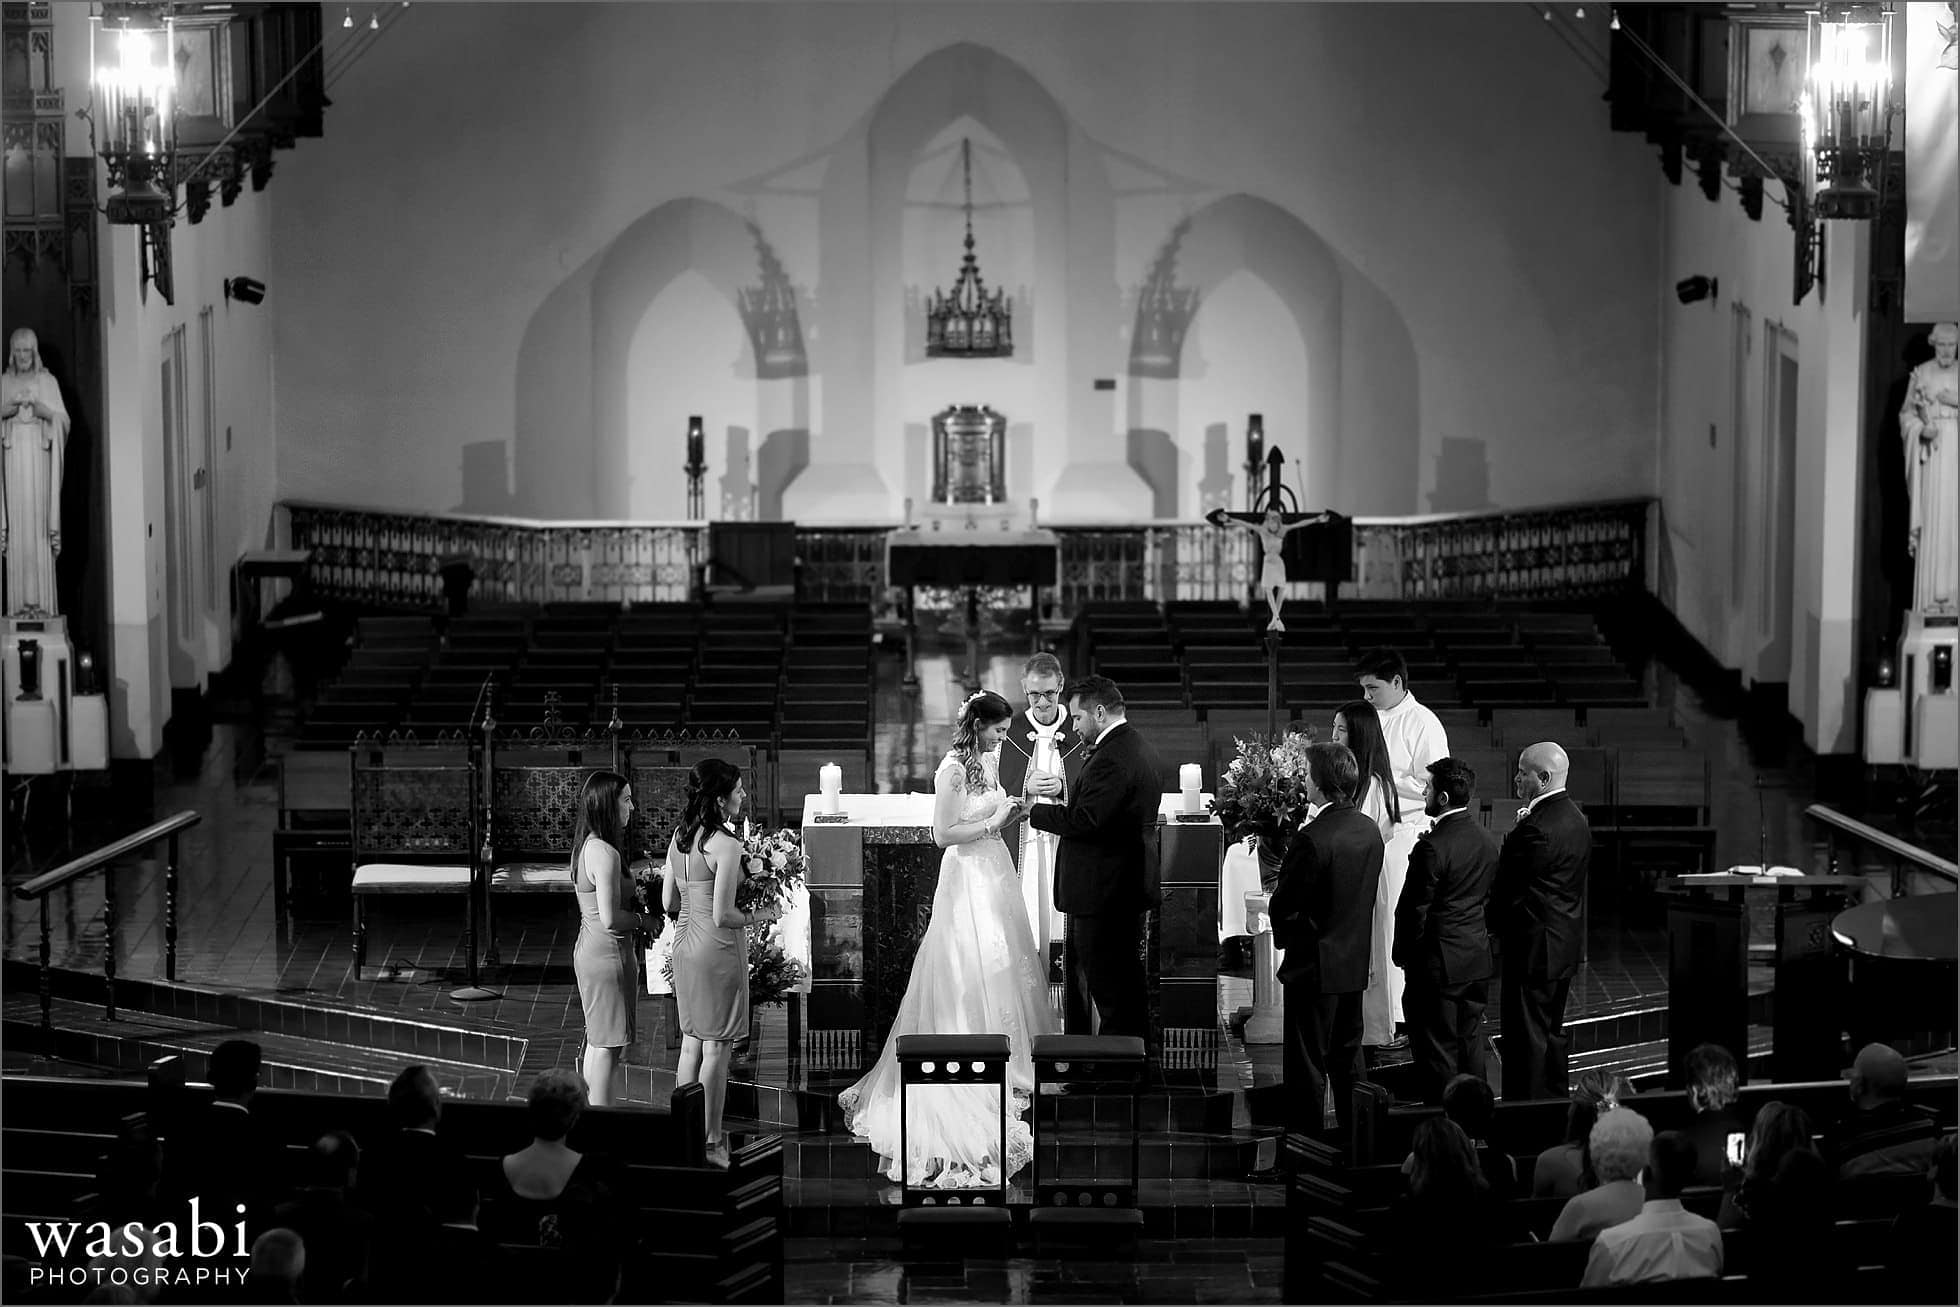 bride and groom exchange rings during wedding ceremony at St Luke Roman Catholic Church in River Forest